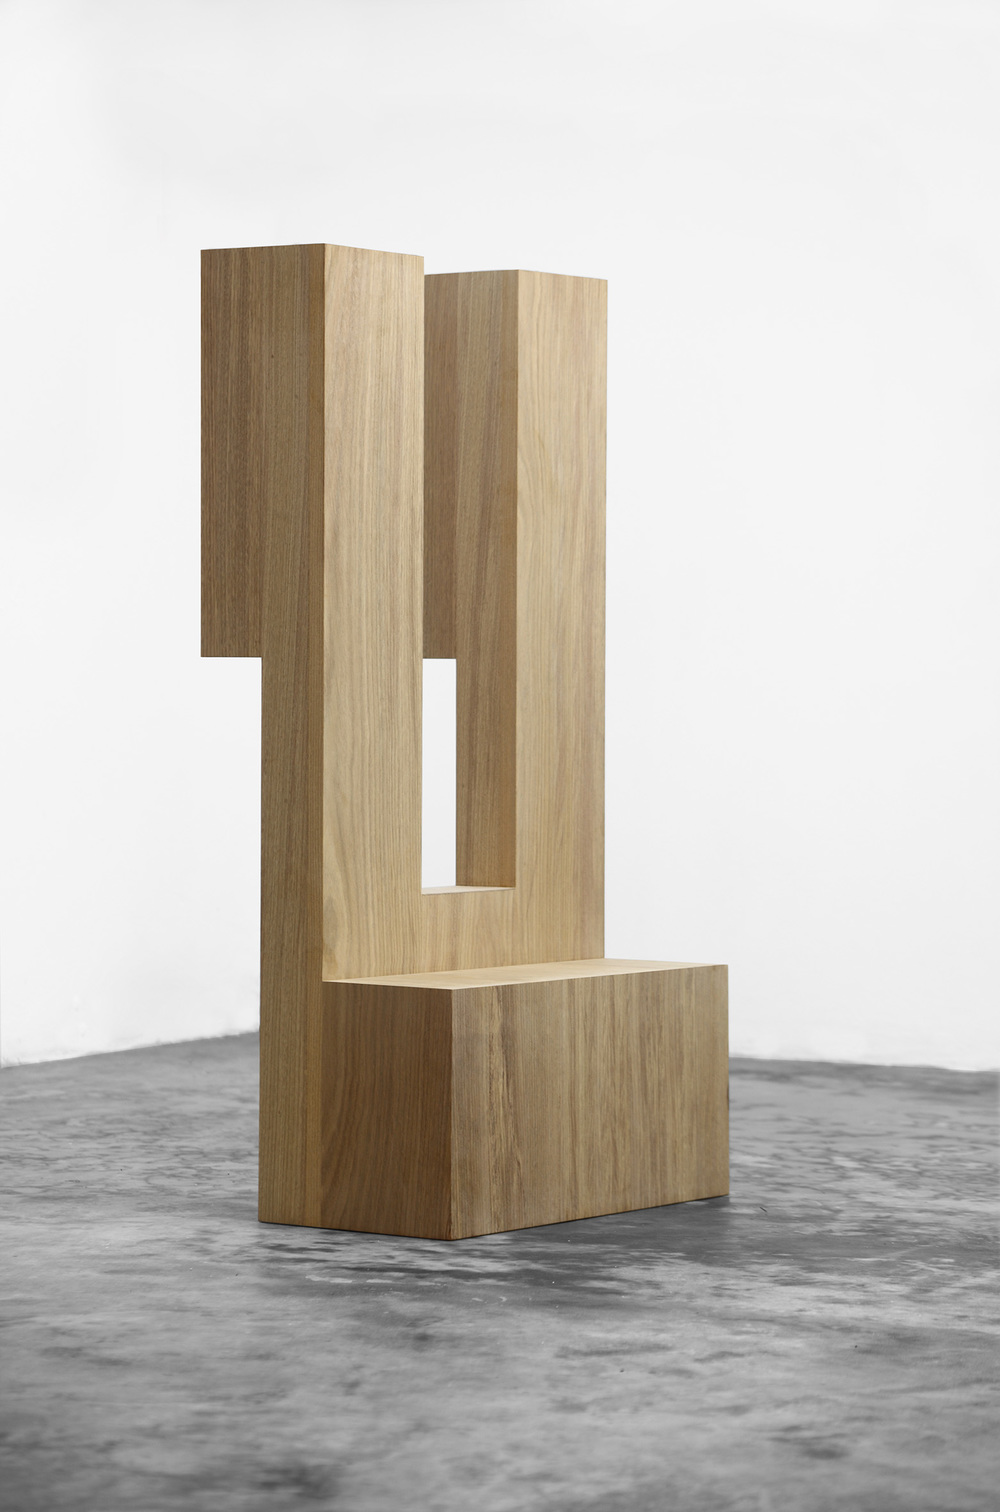 Untitled (Monument), 2013, Wood, 150 x 75 x 50 cm A three-dimensional replica of one of the first shapes drawn using the computer program Sketchpad developed by computer scientist Ivan Sutherland in 1963.